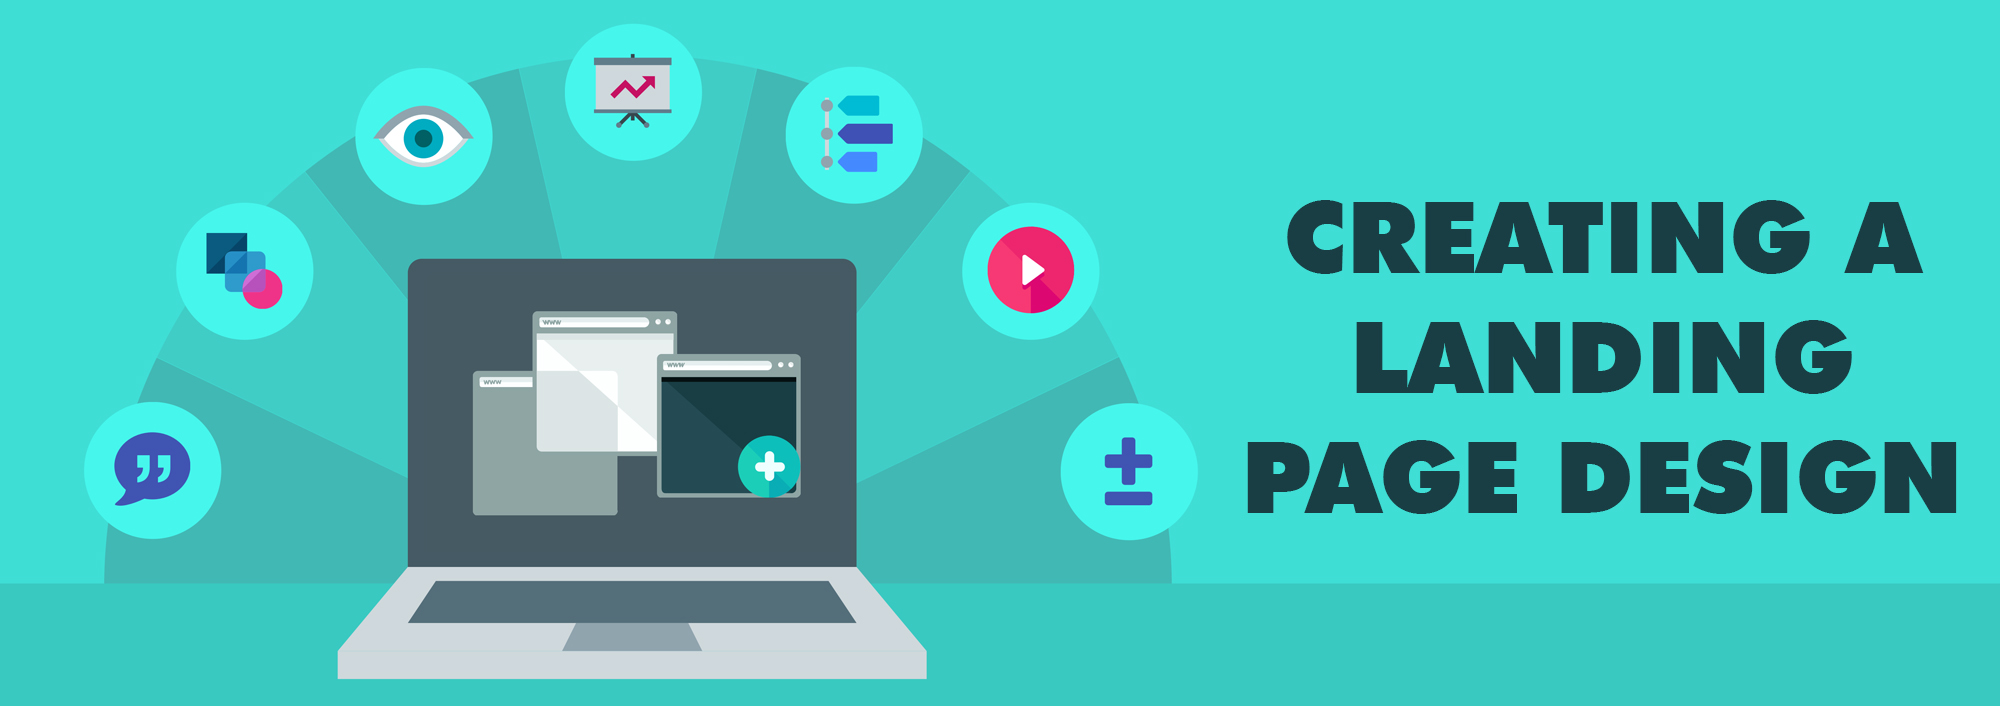 Golden rules to follow when creating a landing page design - Ideas